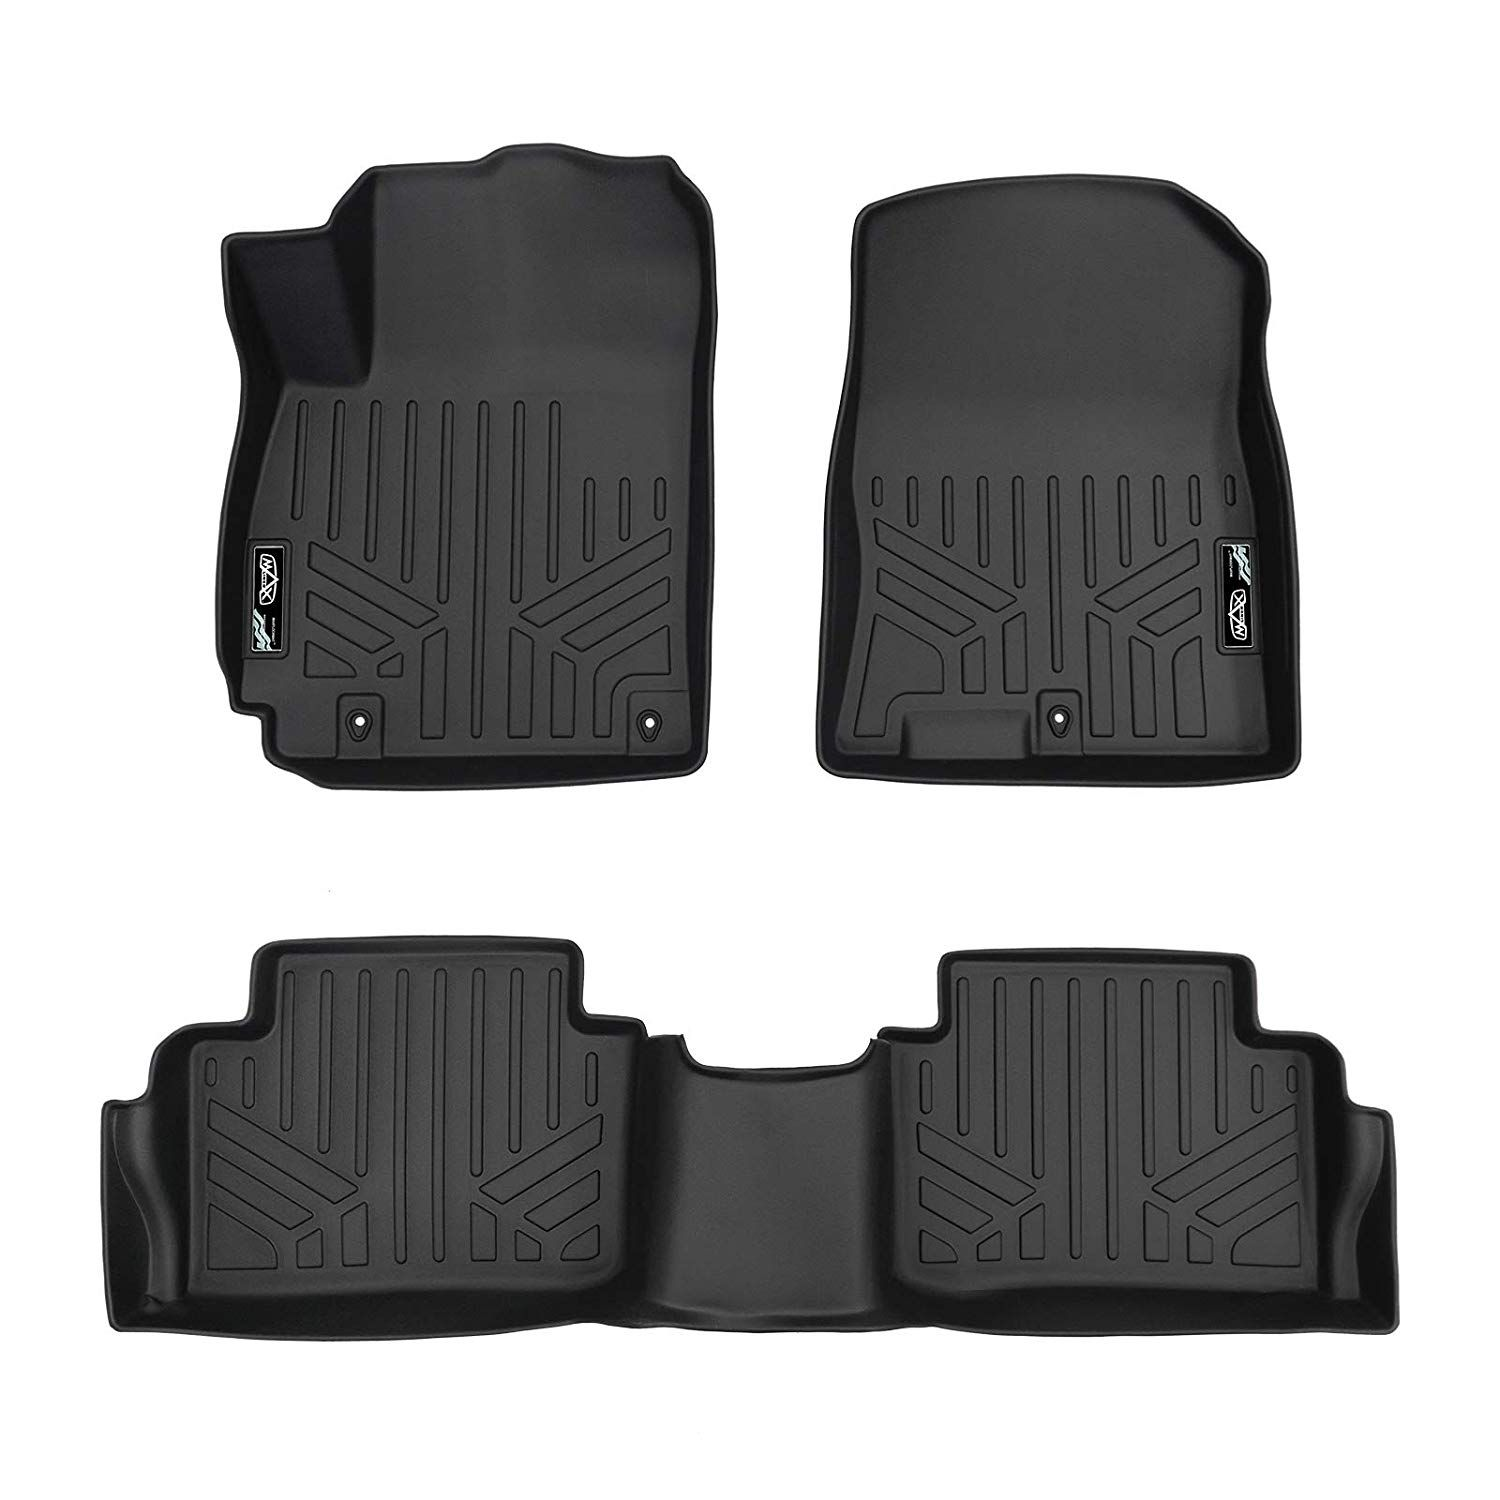 Max Liner A0371 B0371 Floor Mats Cargo Liners Read More Reviews Of The Product By Visiting The Link On The Image This Is An Cargo Liner Floor Mats Liner